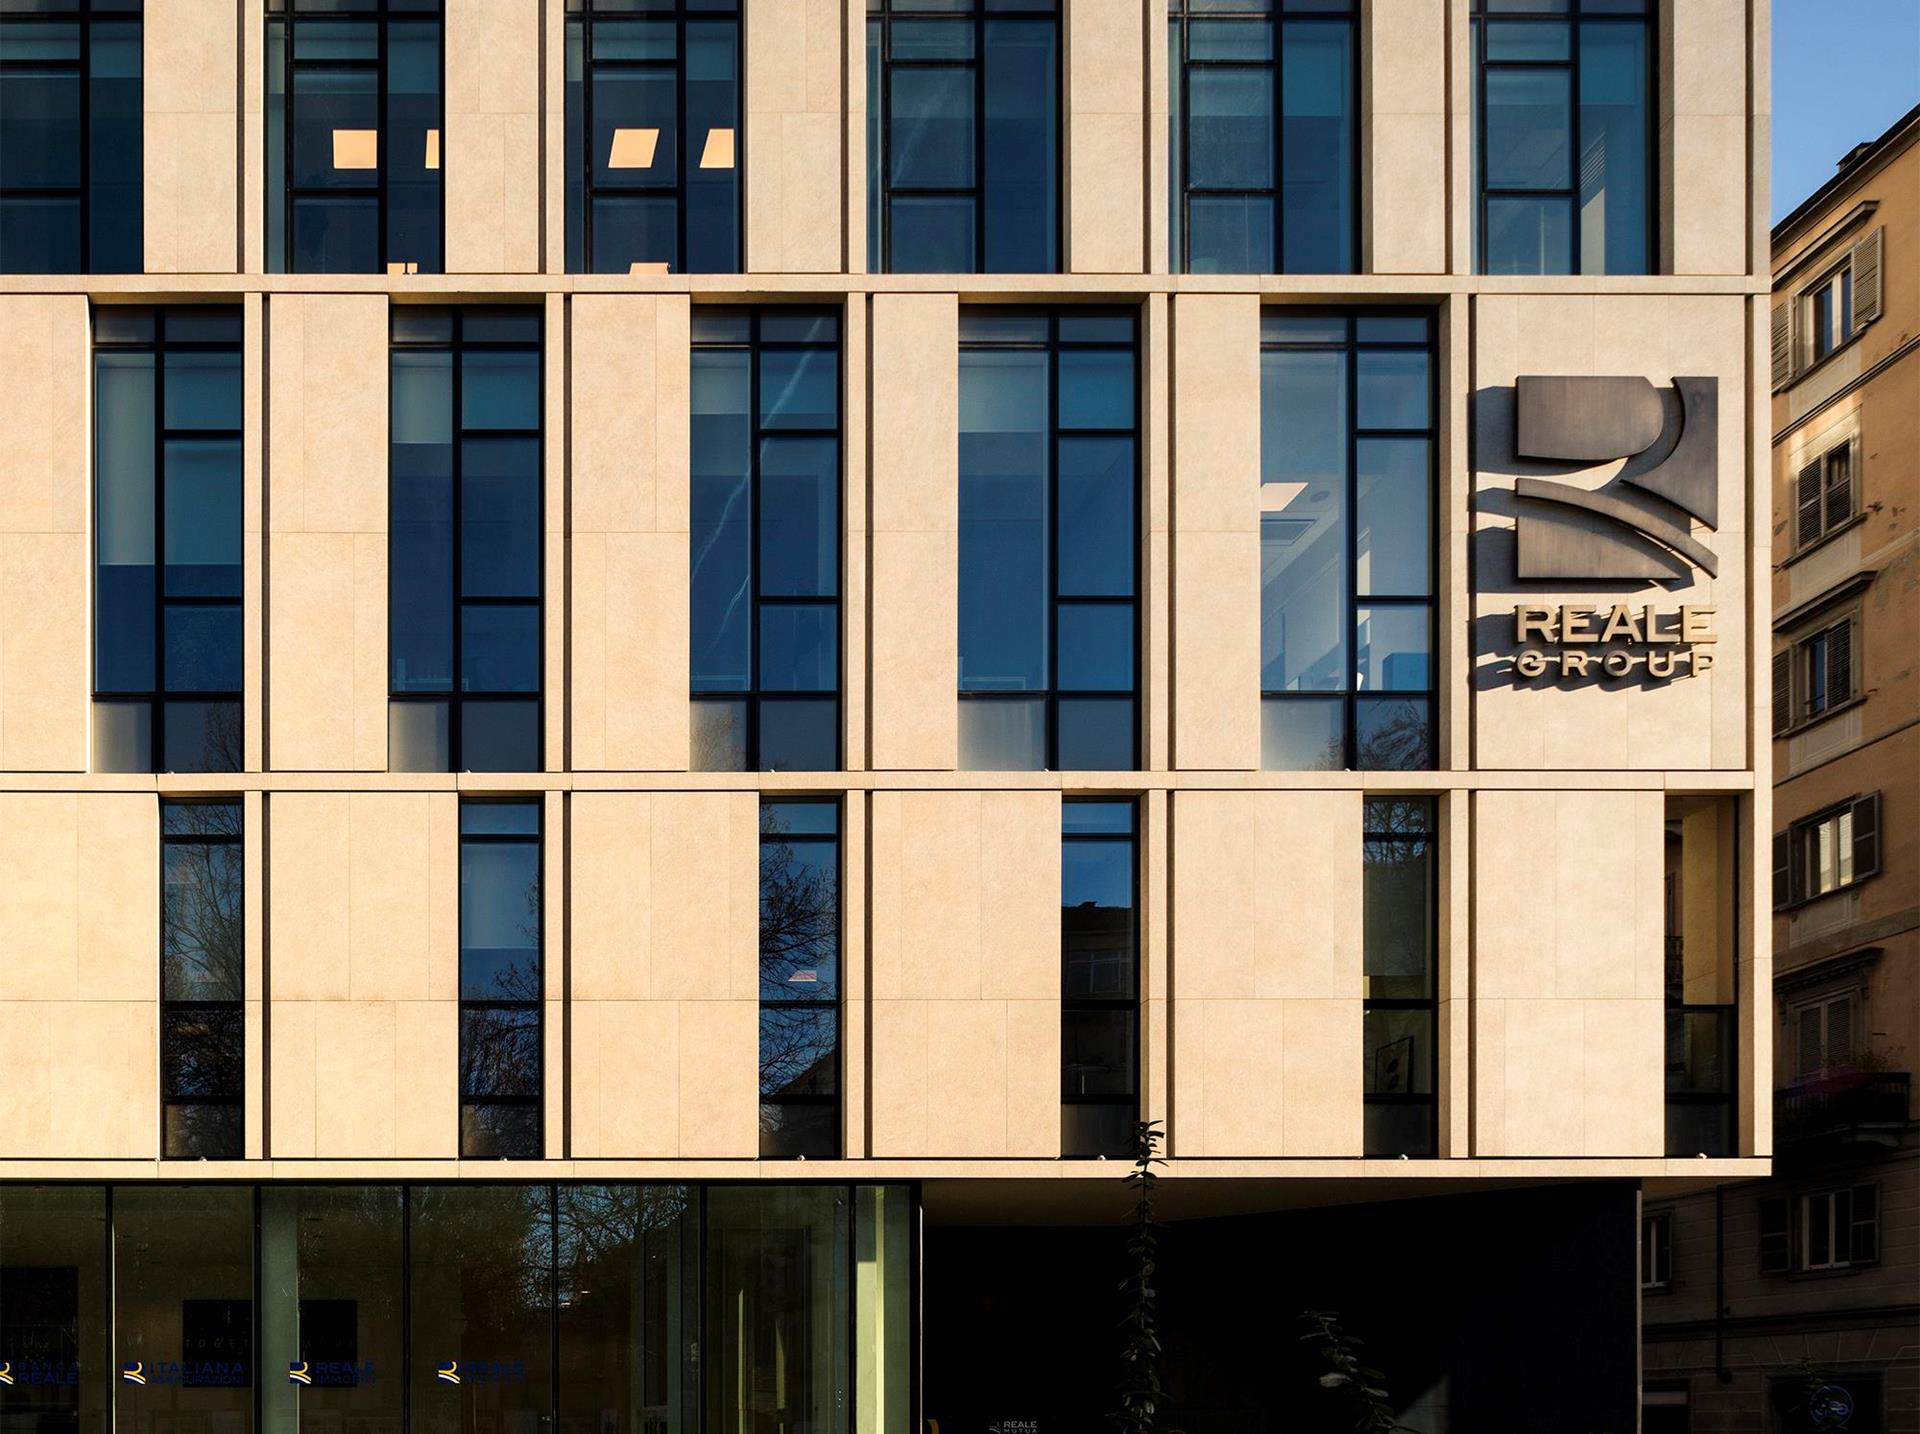 Reale Group Headquarters: Foto 1